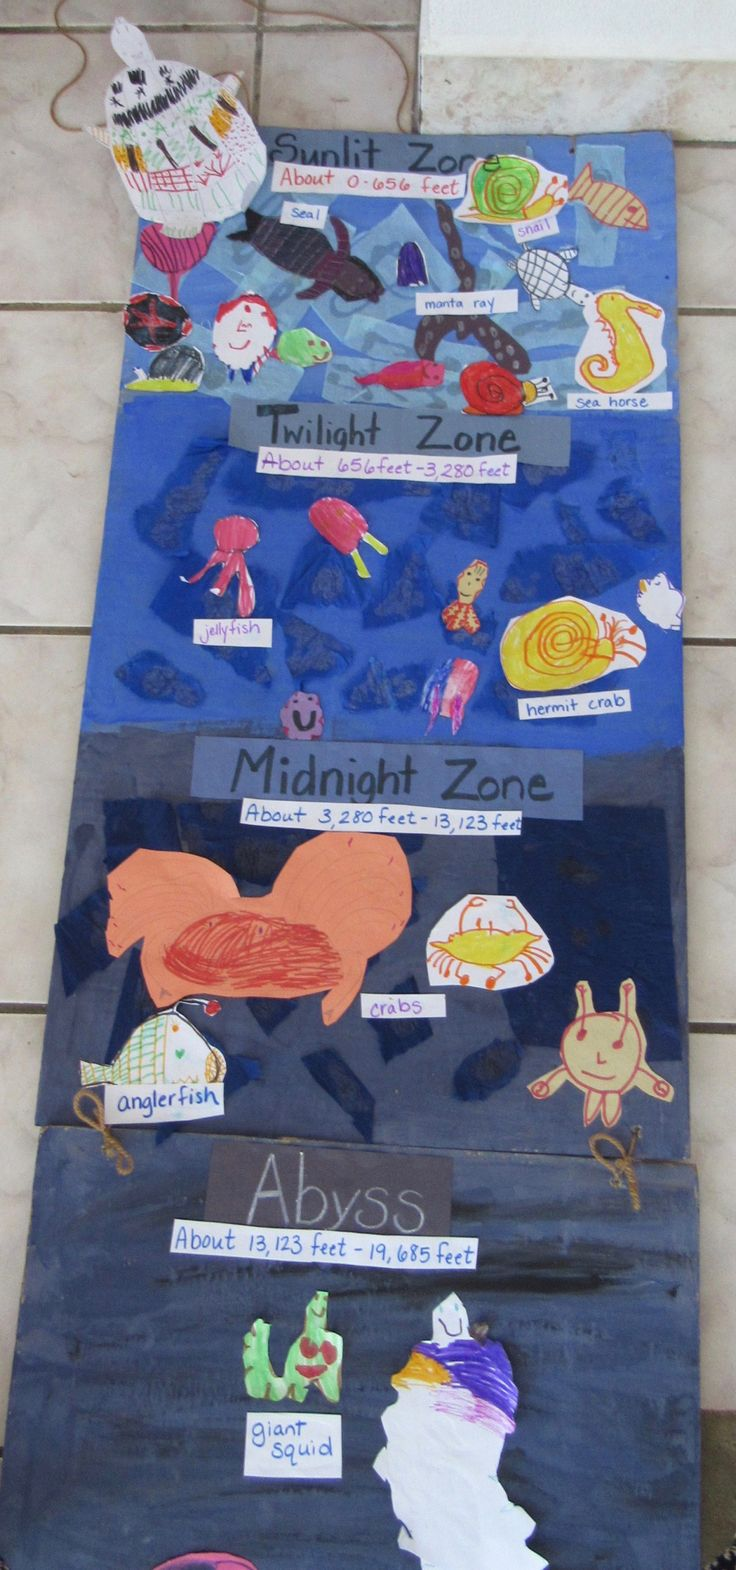 Image Result For Art And Craft Zone Book